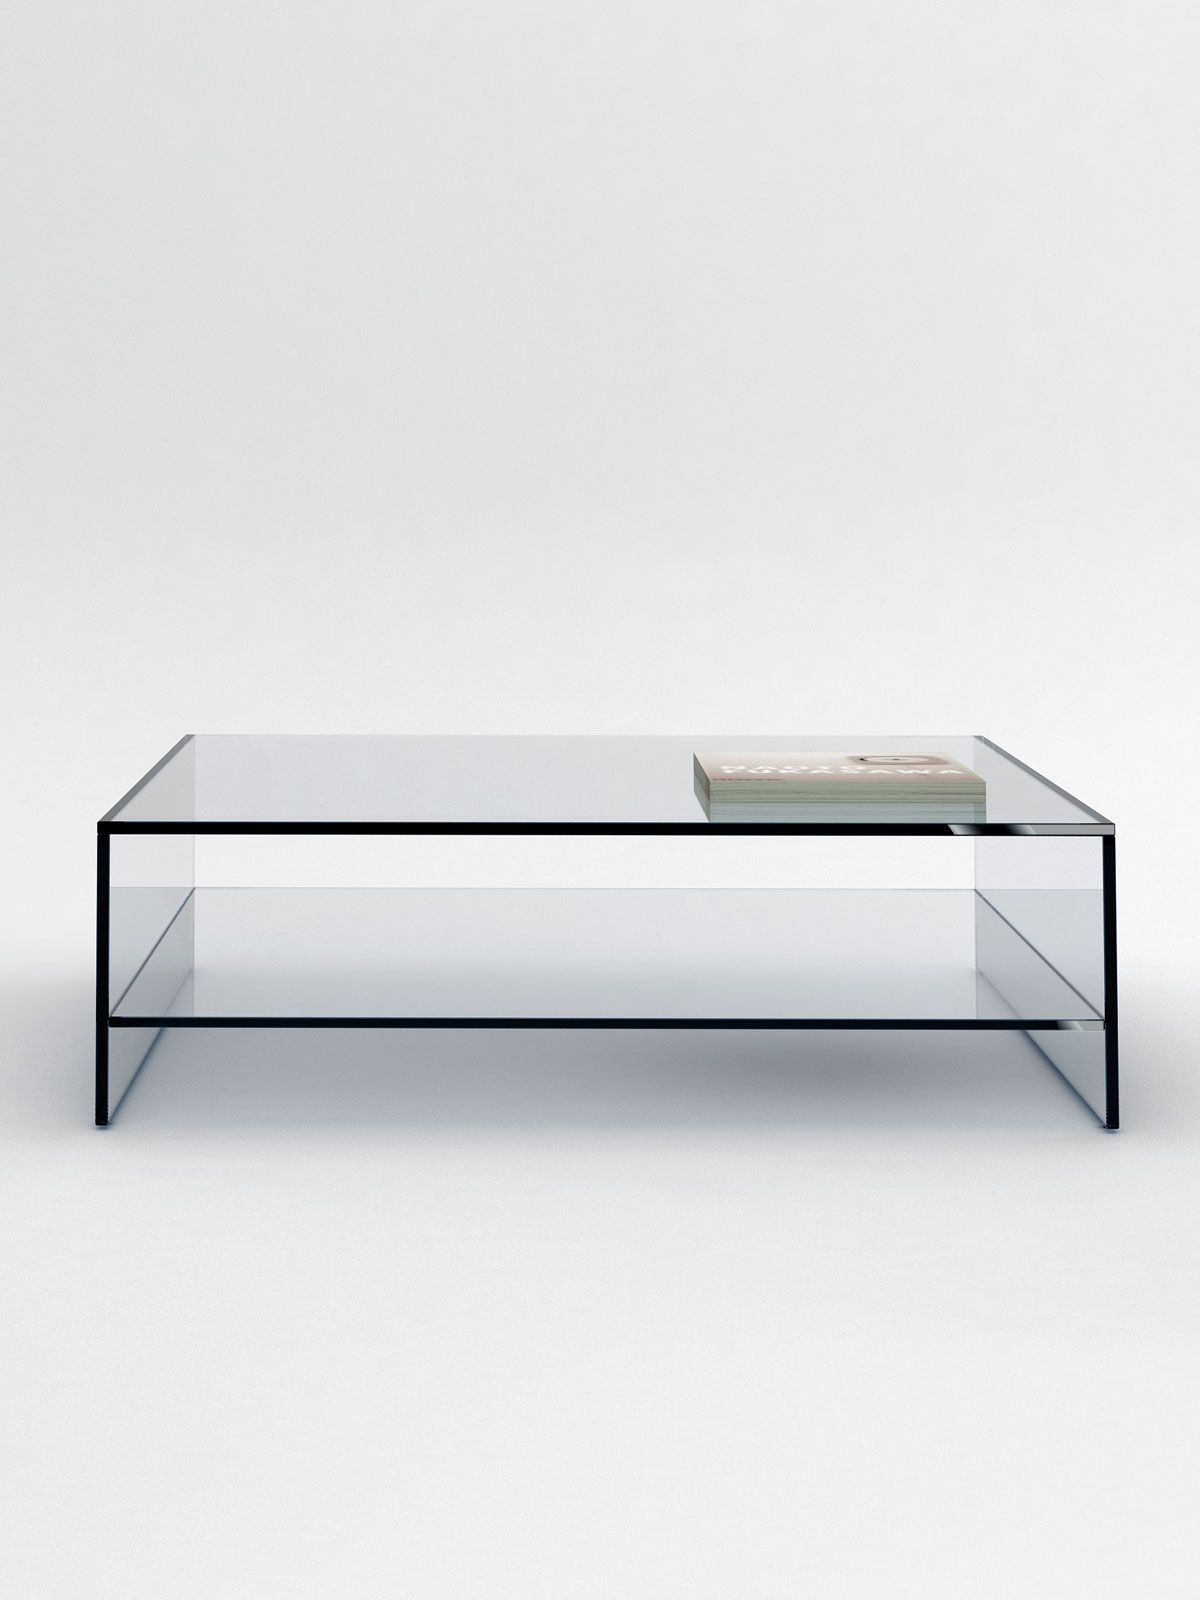 Glass Coffee Table With Shelf Coffee Tables Made To Order - Round glass coffee table with shelf